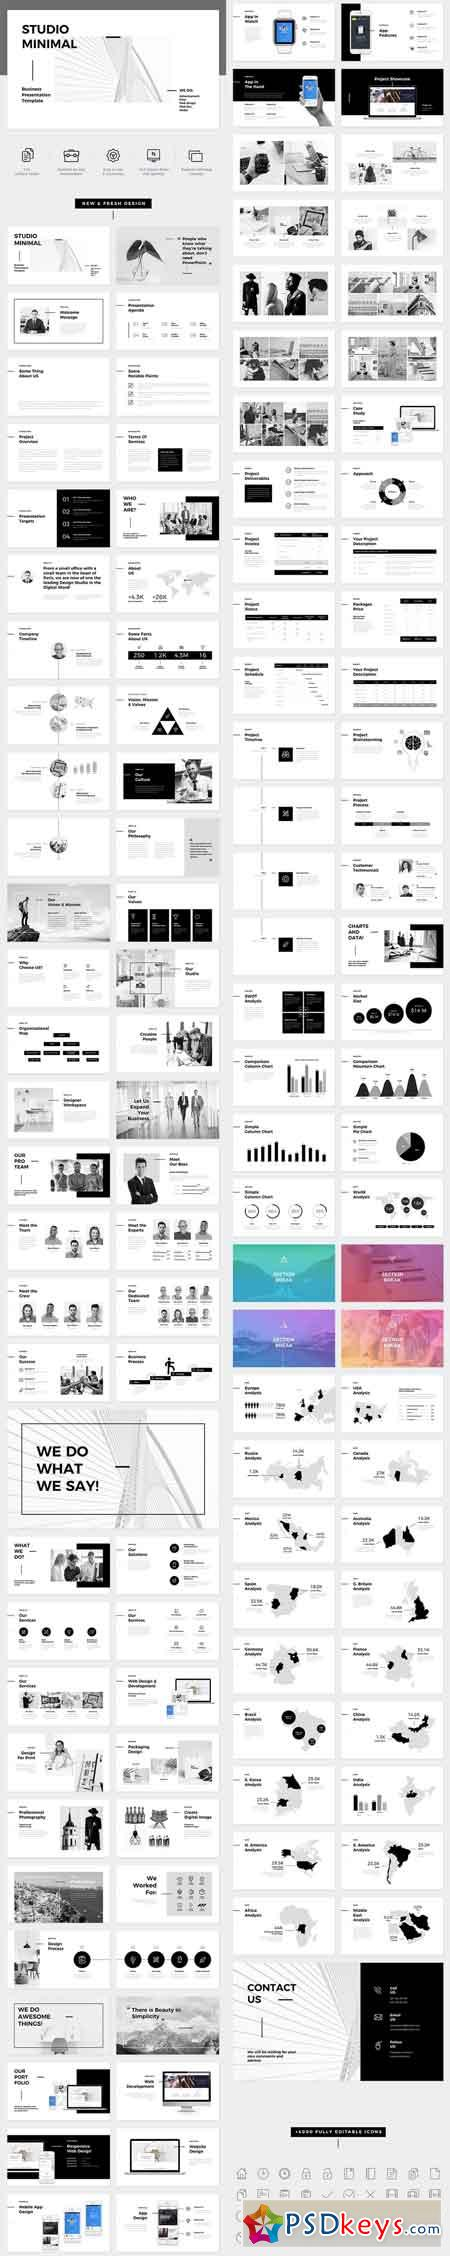 Studio Minimal Presentation Google Slides Template 21709689